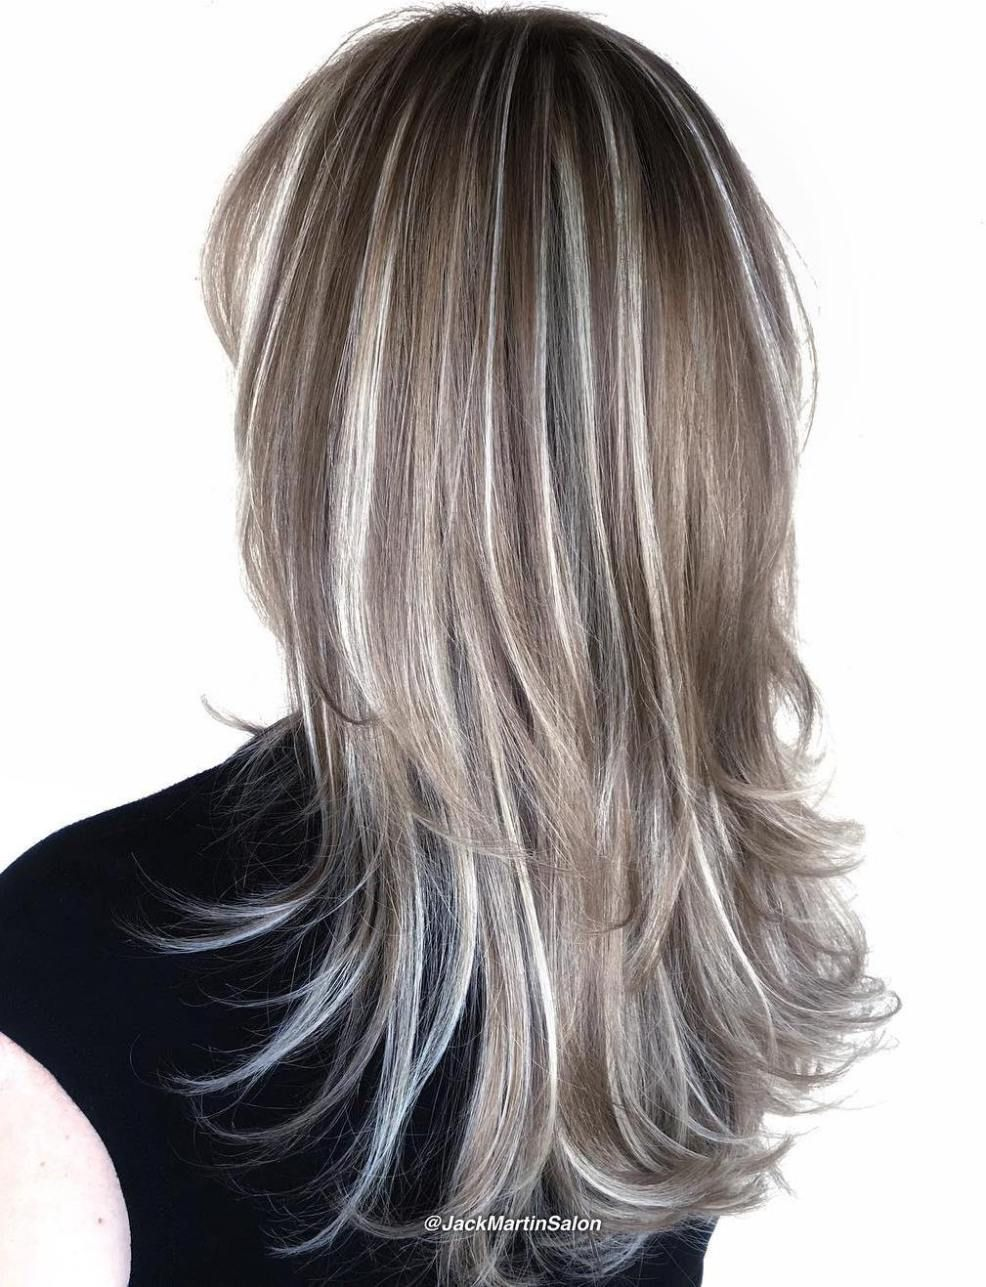 40 Hair Solor Ideas With White And Platinum Blonde Hair Brown Hair With Silver Highlights Blonde Hair With Silver Highlights Platinum Blonde Hair